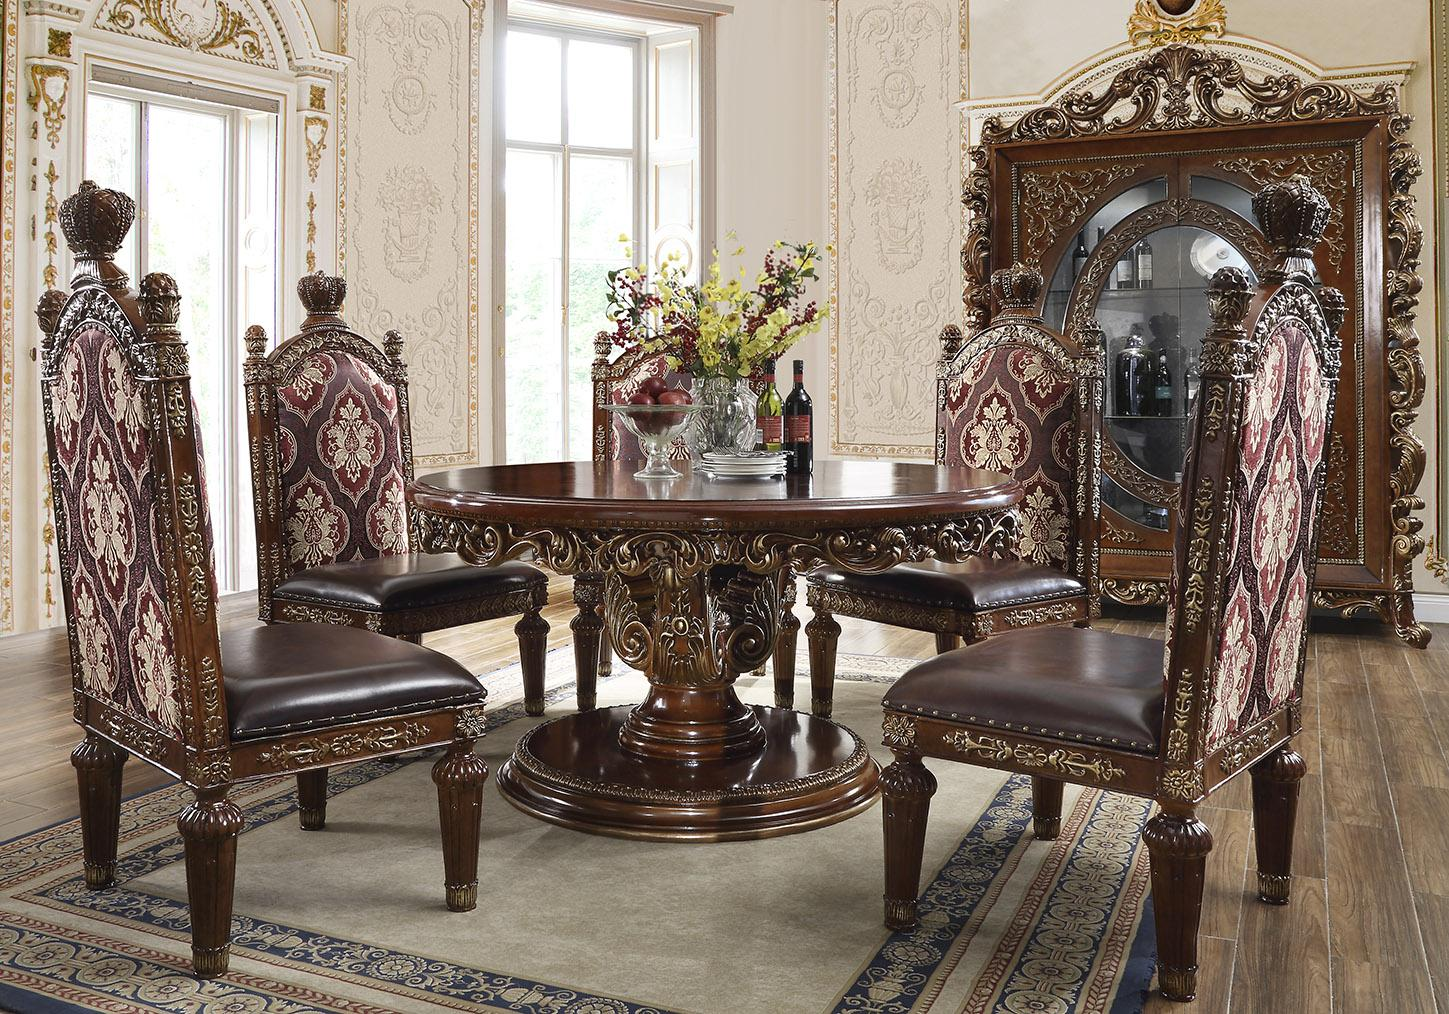 Traditional Gold, Metallic Leather and Fabric, Faux Leather, Solid Hardwood Dining Table Set 6 pcs HD-1804 by Homey Design